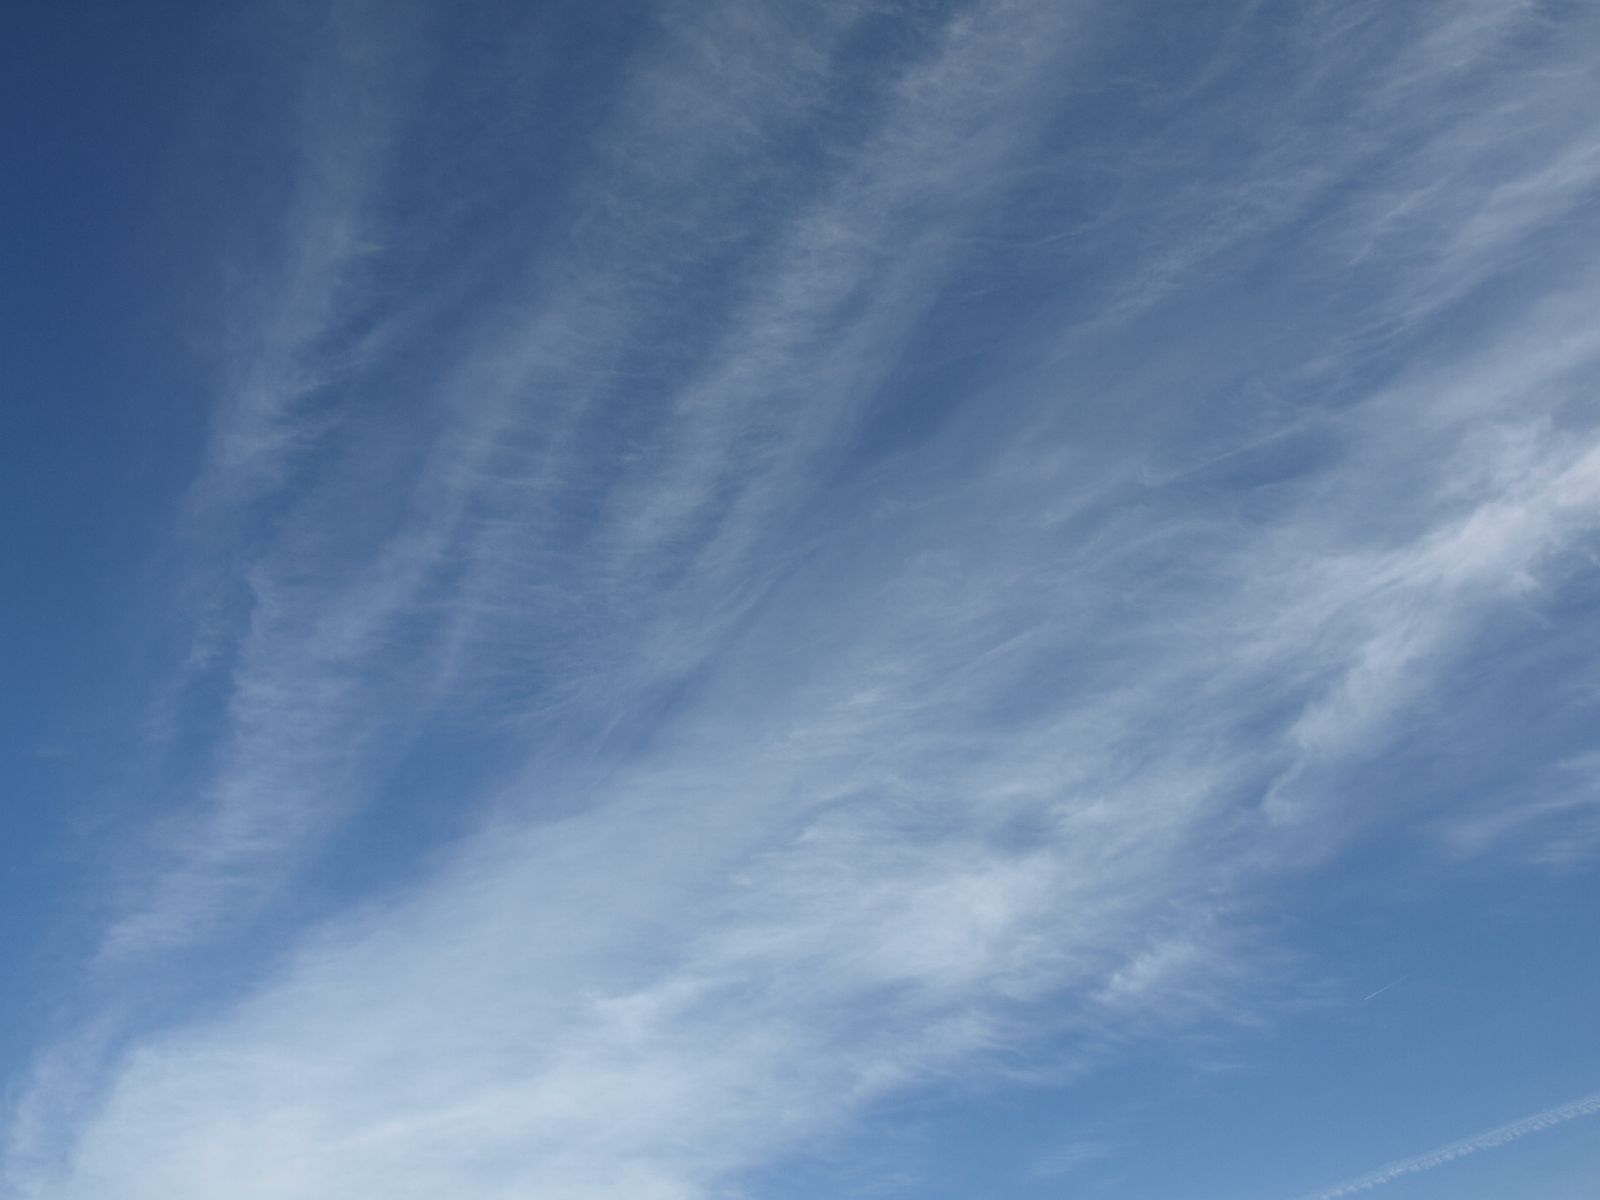 Sky_Clouds_Photo_Texture_A_P4201477